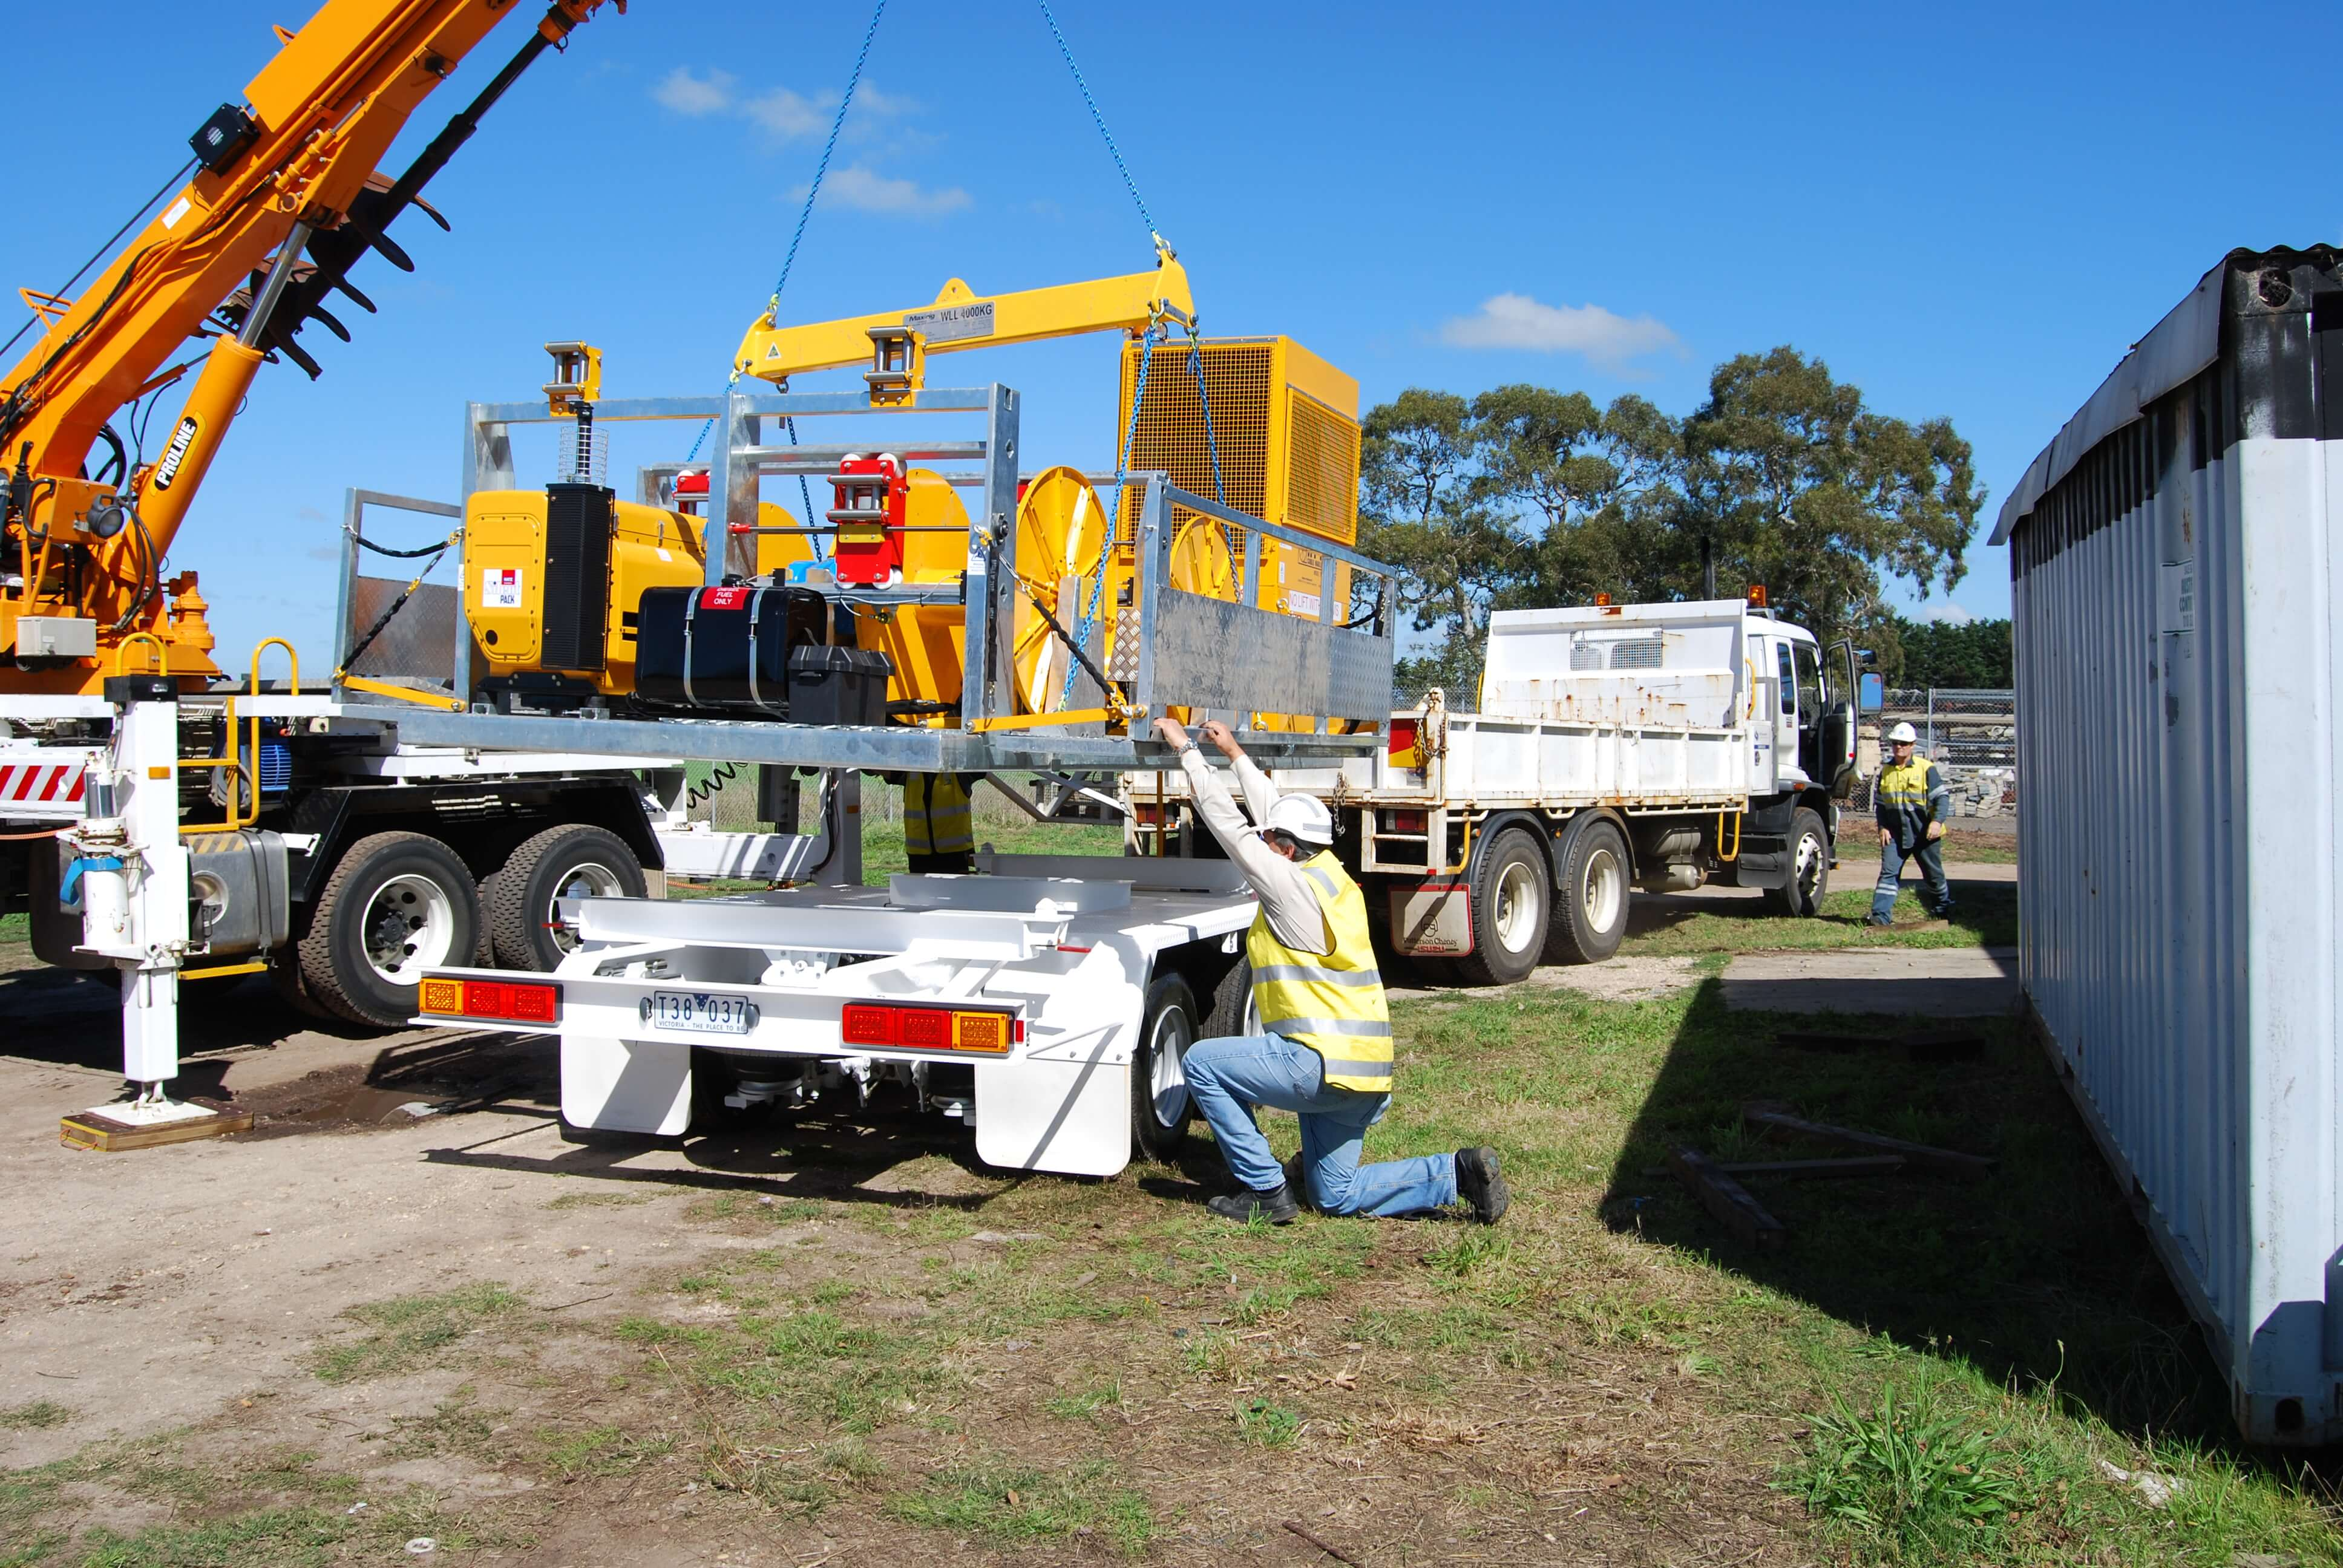 Hydeng Cable Hauling machine loaded onto trailer